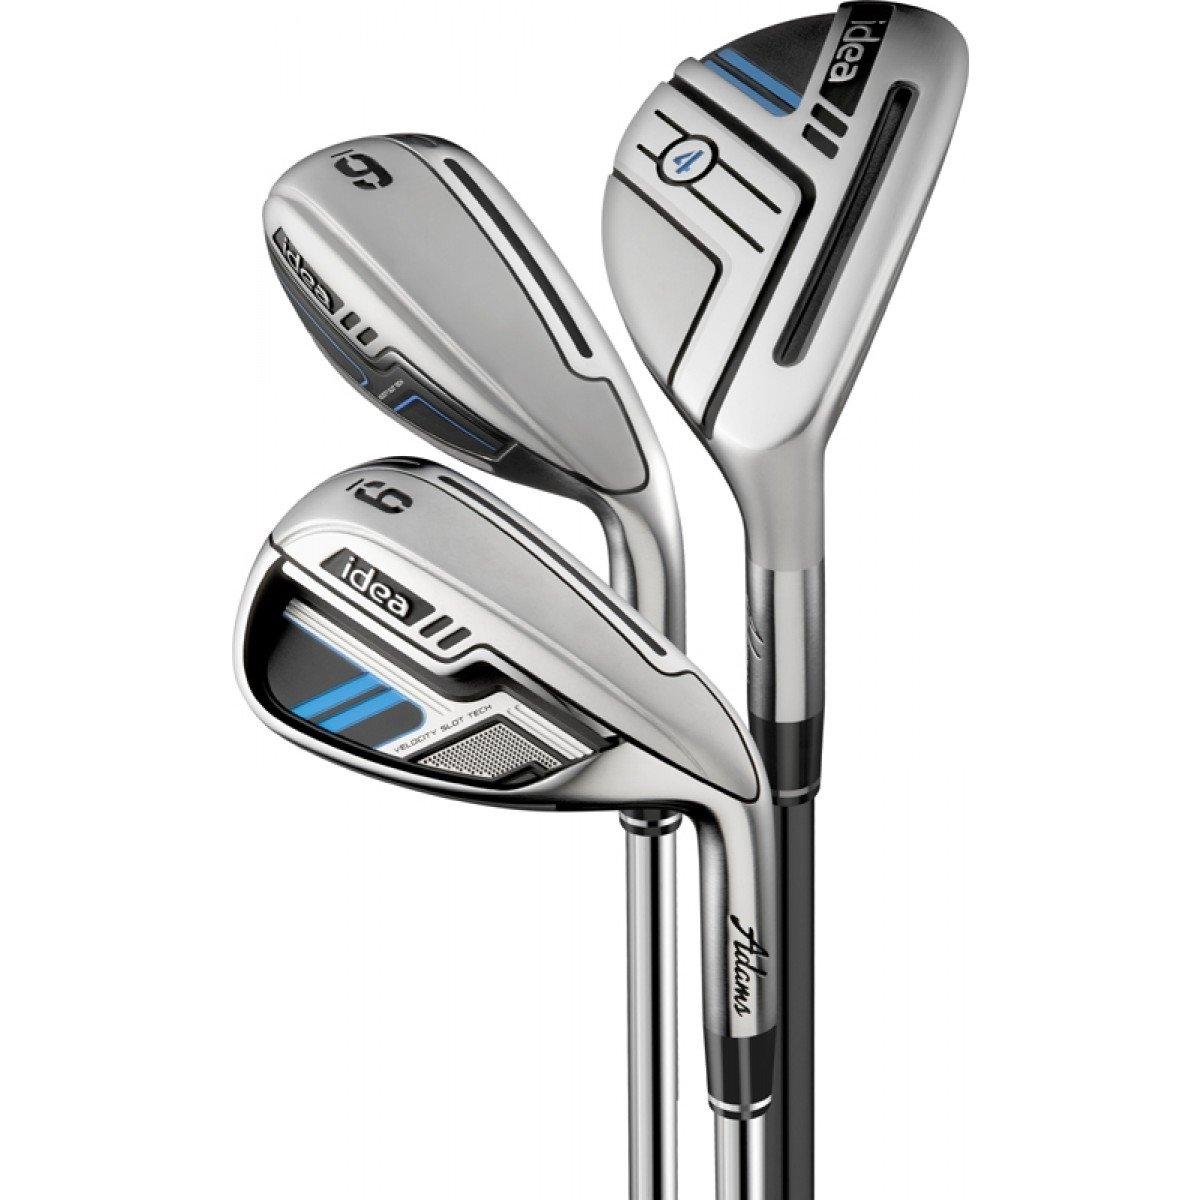 10 Lovely Adams Idea Hybrid Irons Review golf club adams idea hybrid irons full golf sets best clubs